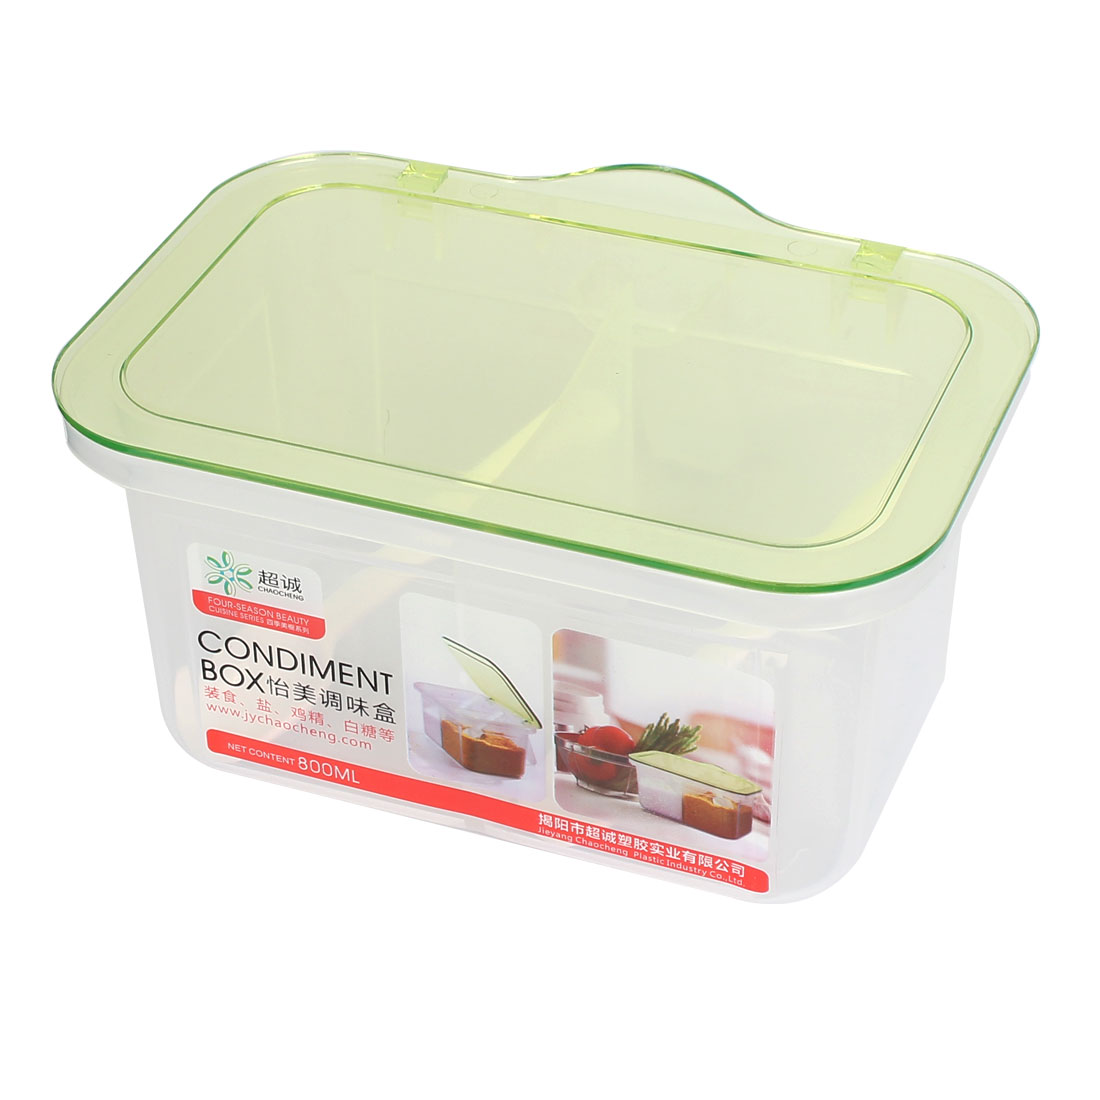 Kitchen Plastic 2 Compartments Condiment Container Holder Tray Box Clear Green